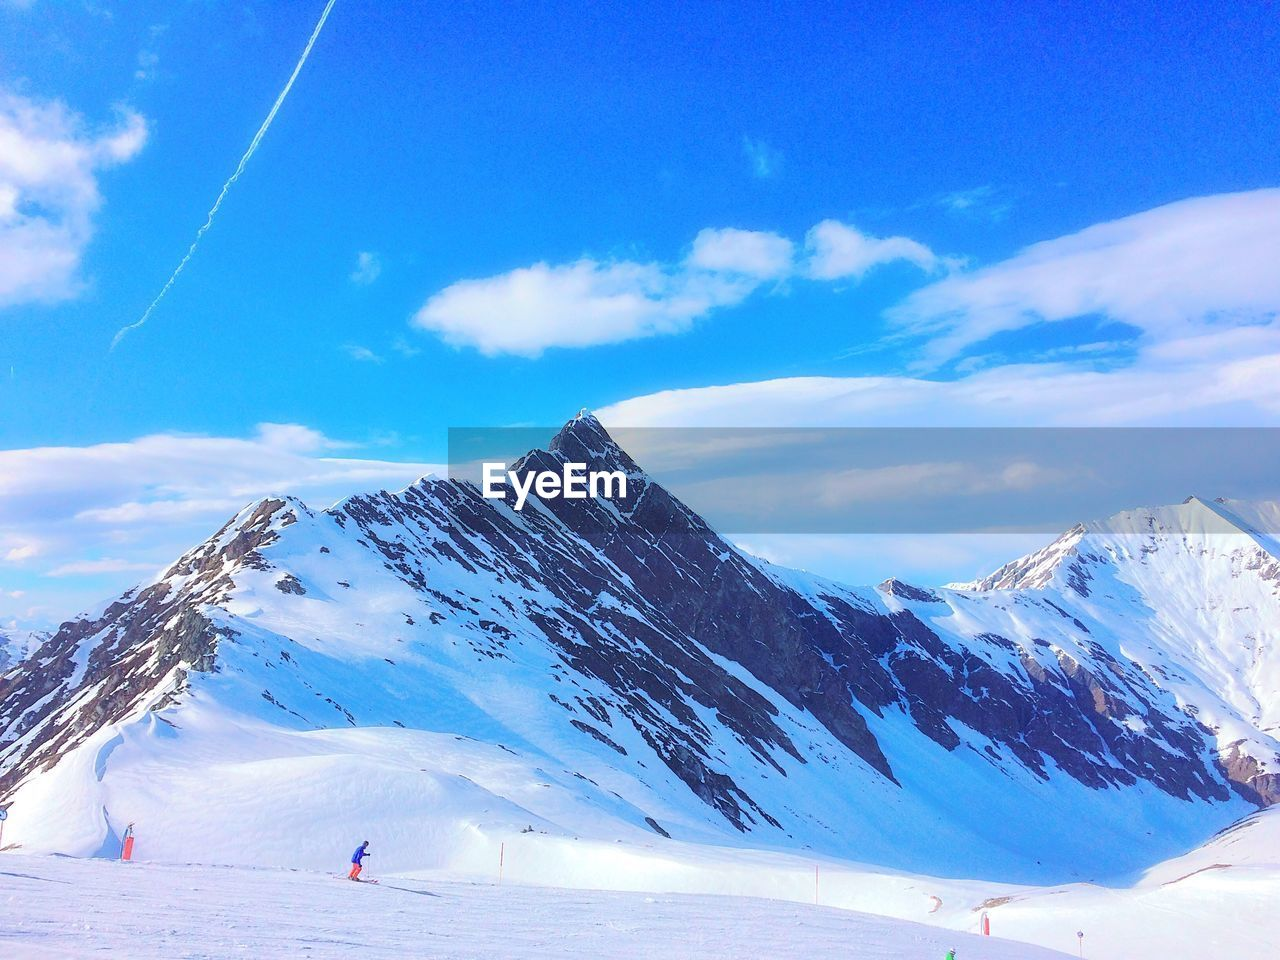 winter, mountain, snow, sky, cold temperature, scenics - nature, cloud - sky, beauty in nature, tranquil scene, snowcapped mountain, tranquility, mountain range, environment, non-urban scene, white color, nature, day, blue, landscape, outdoors, mountain peak